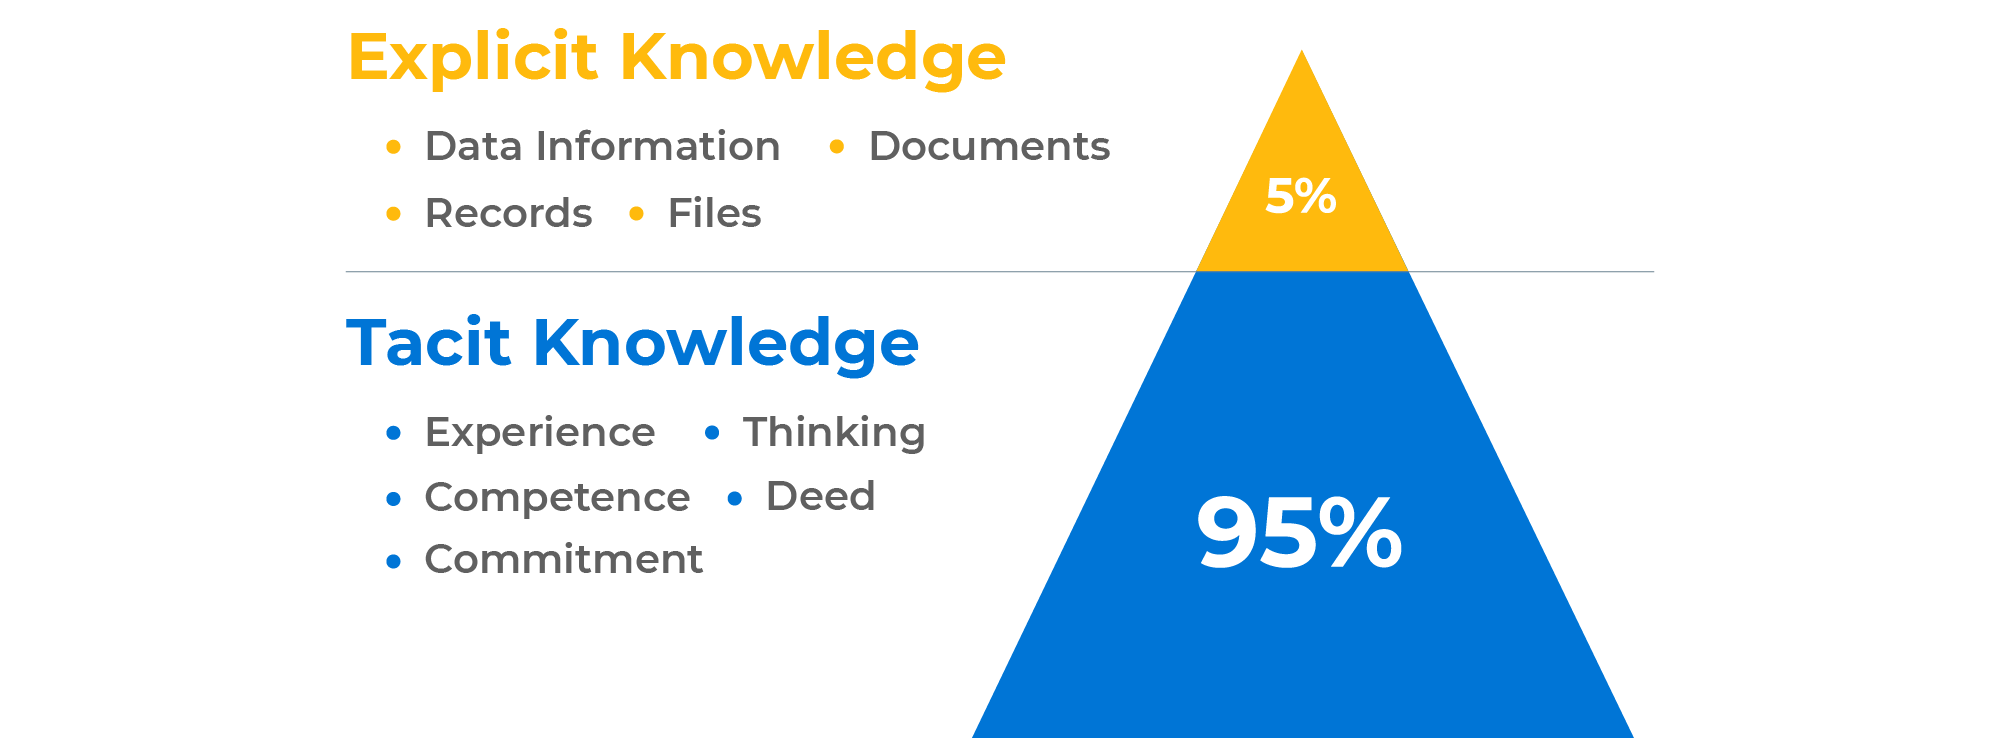 What is Tacit Knowledge?